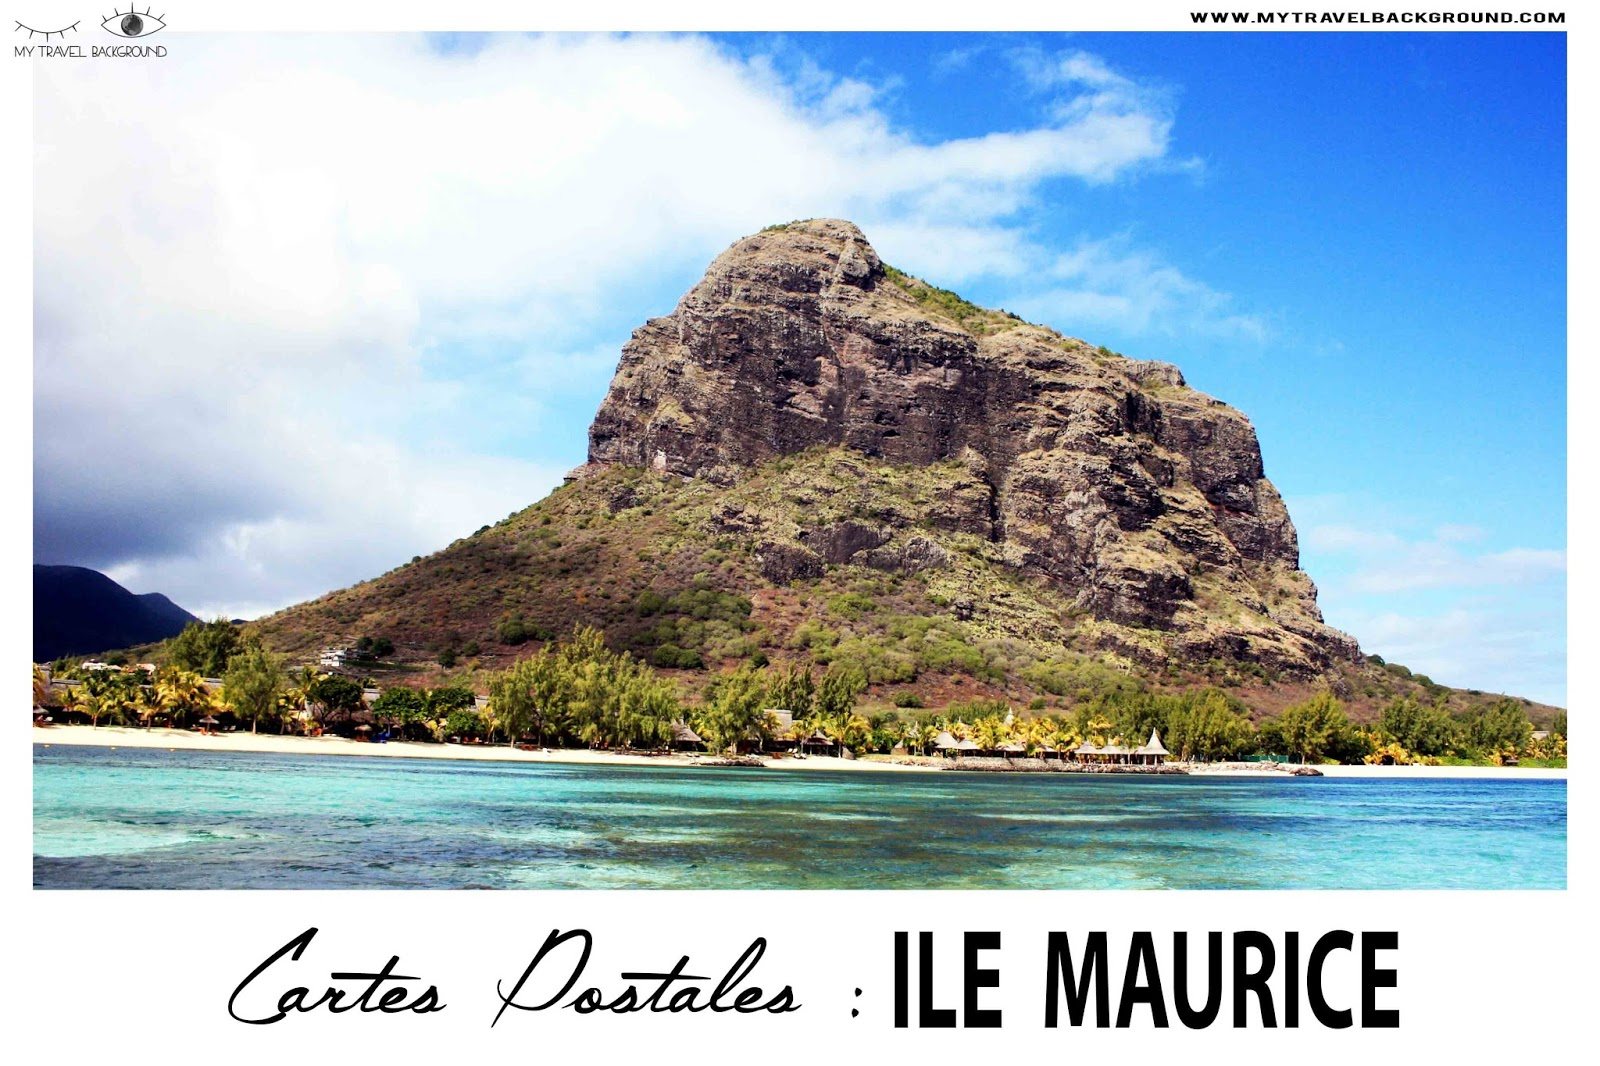 My Travel Background : Cartes Postale Ile Maurice